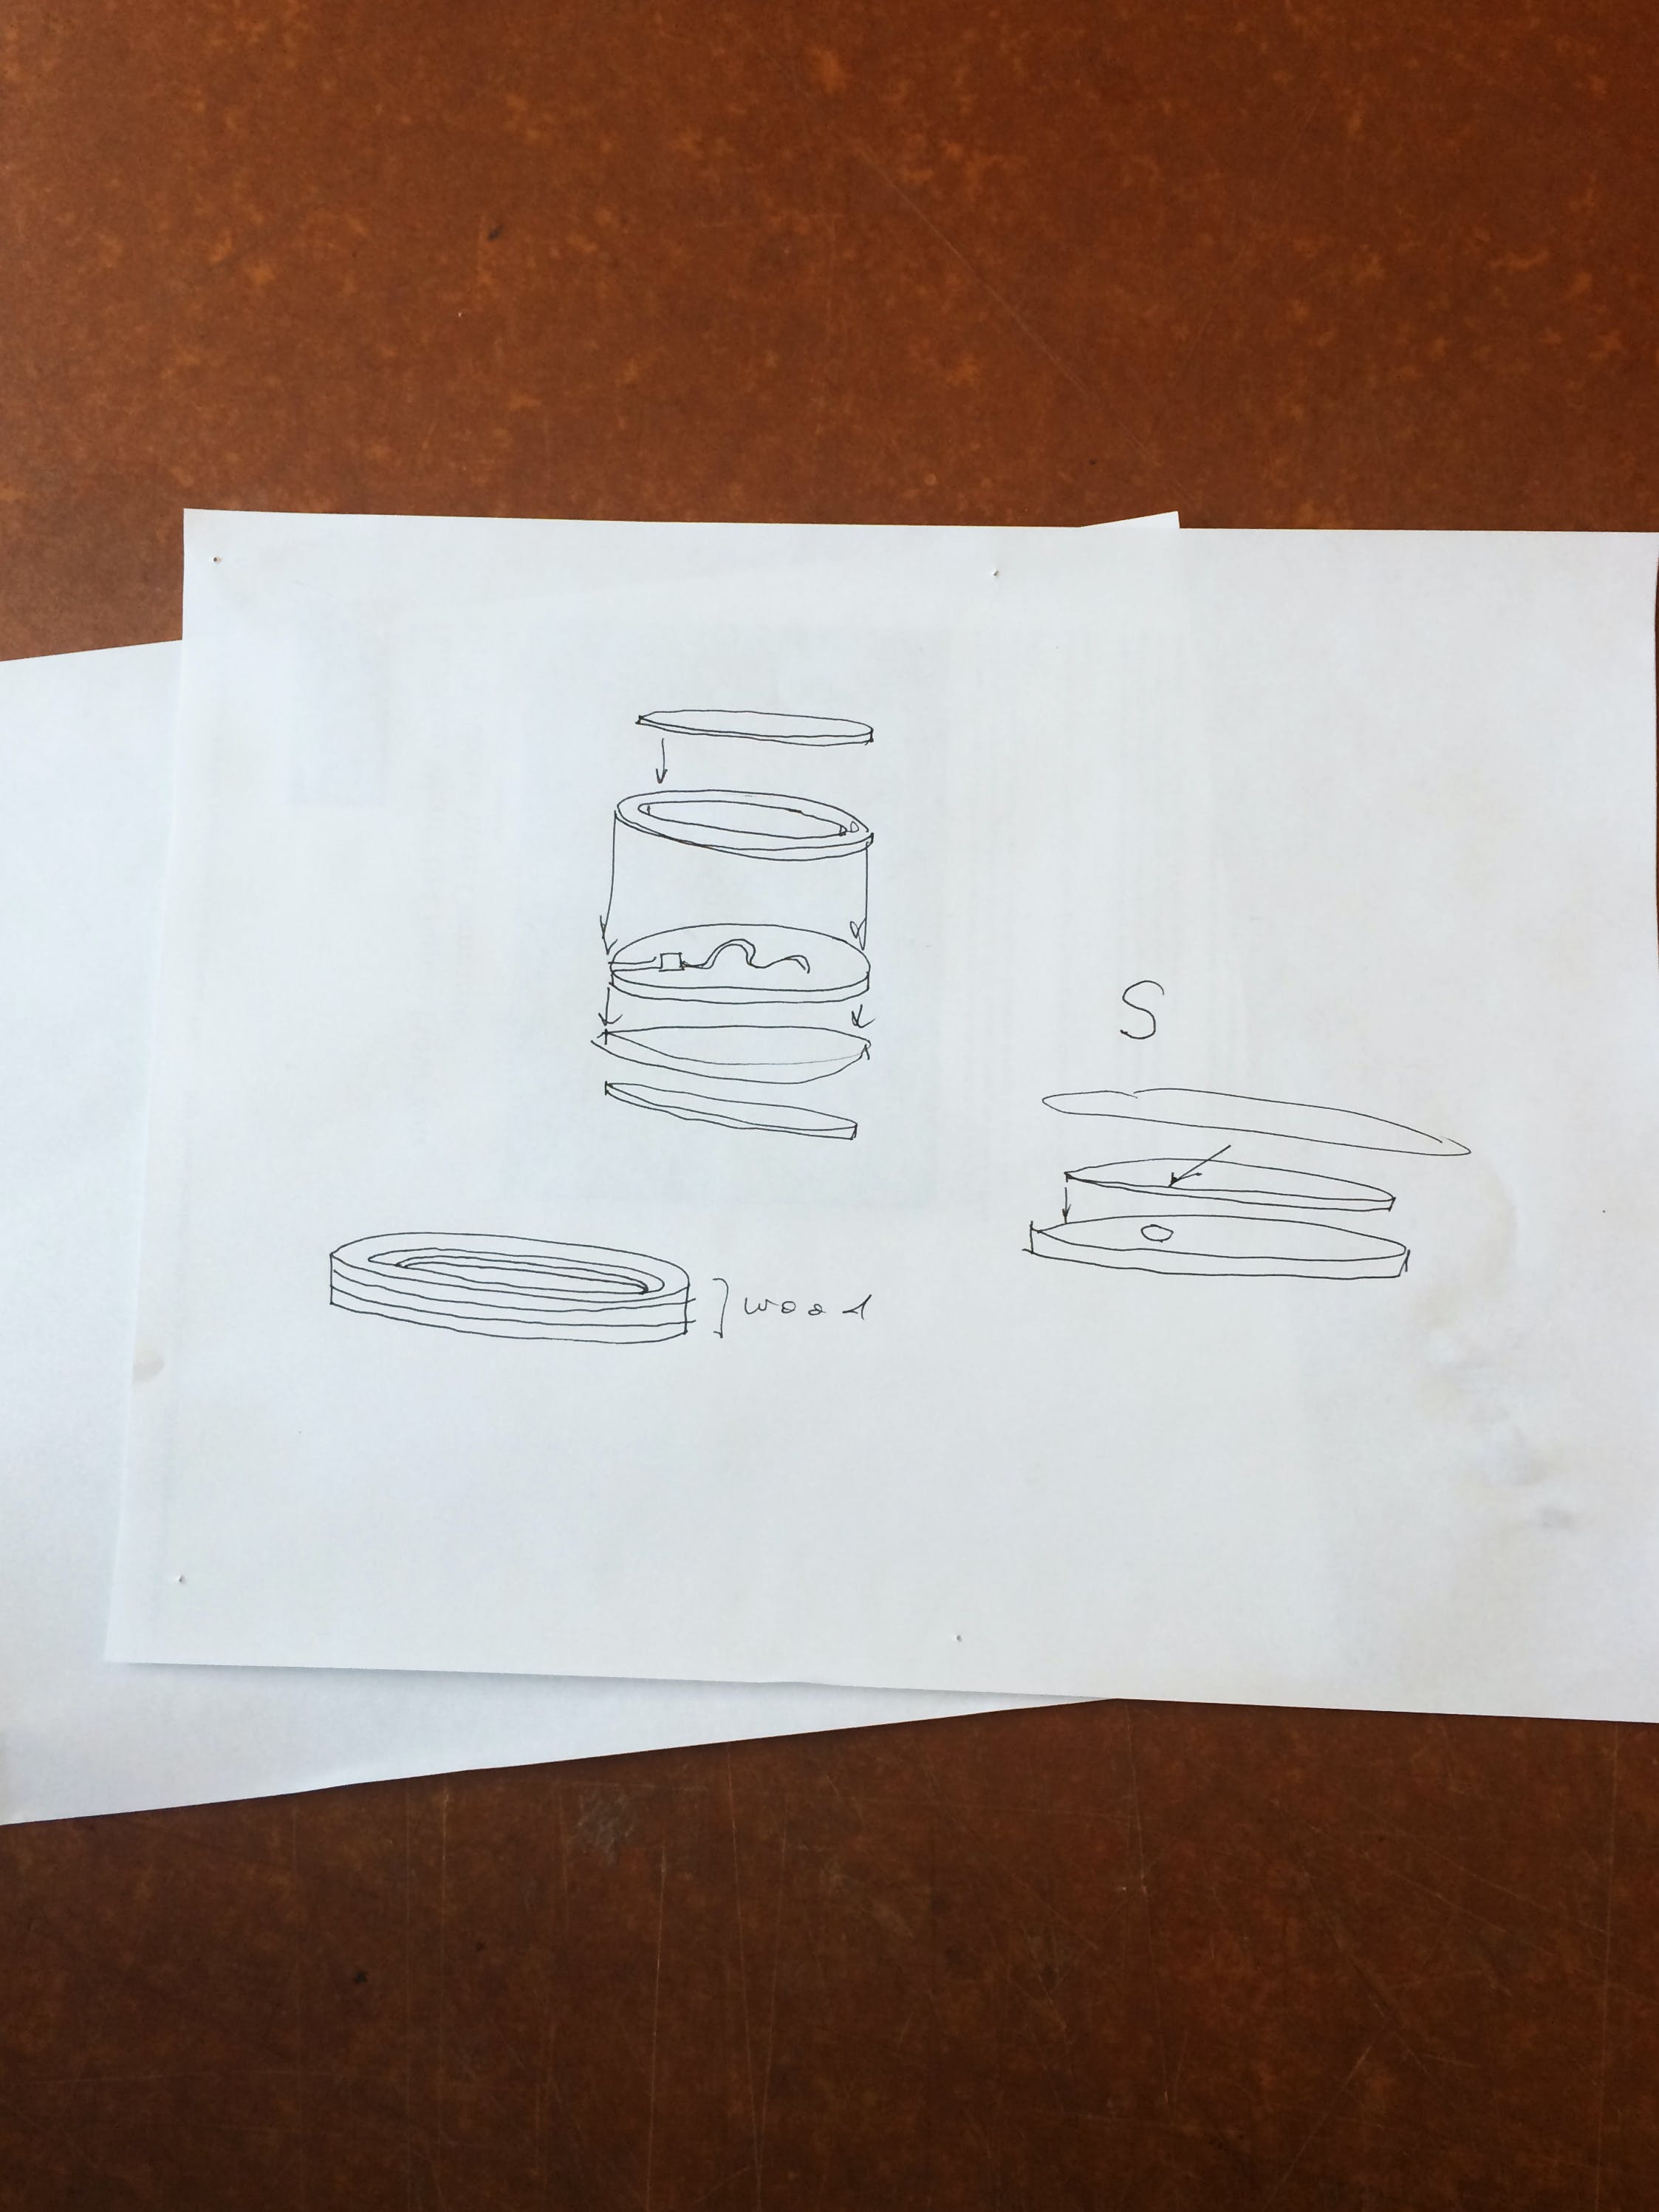 Quick sketches to direct fabrication method